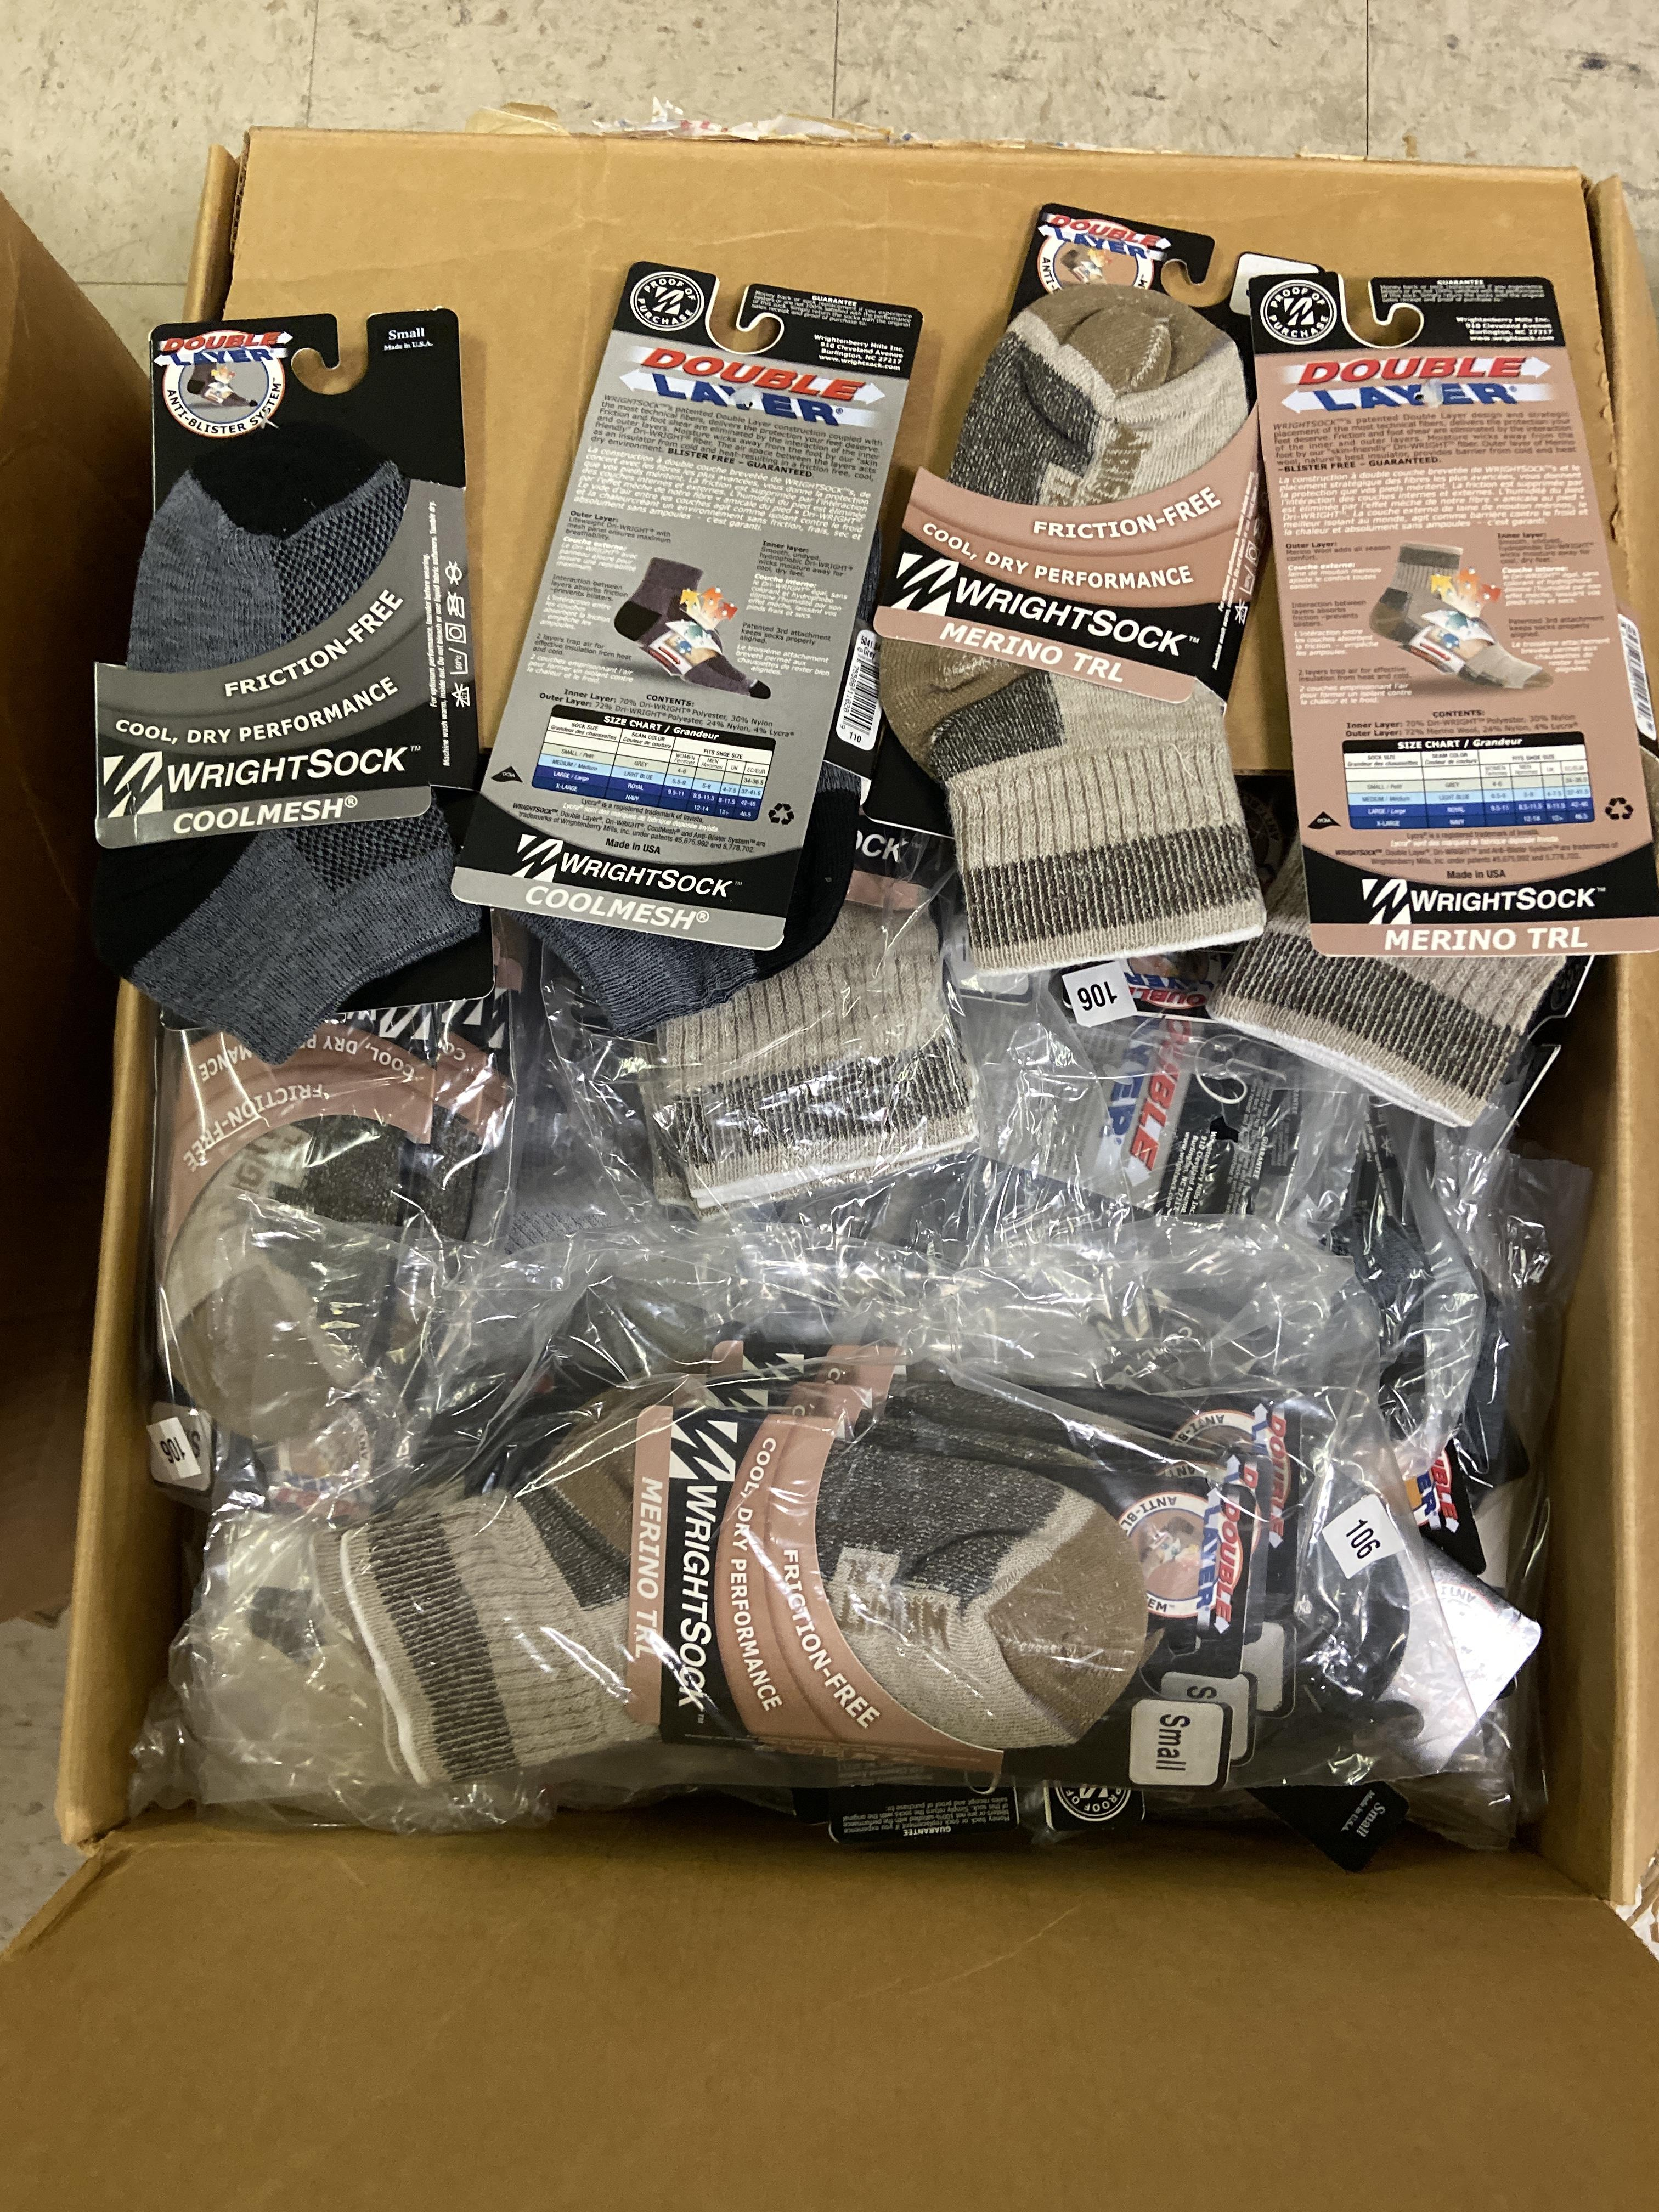 Lot 43 - 500+ packs of New Socks, Wrightsocks Various Styles, Various Colors Lot includes approximately 500